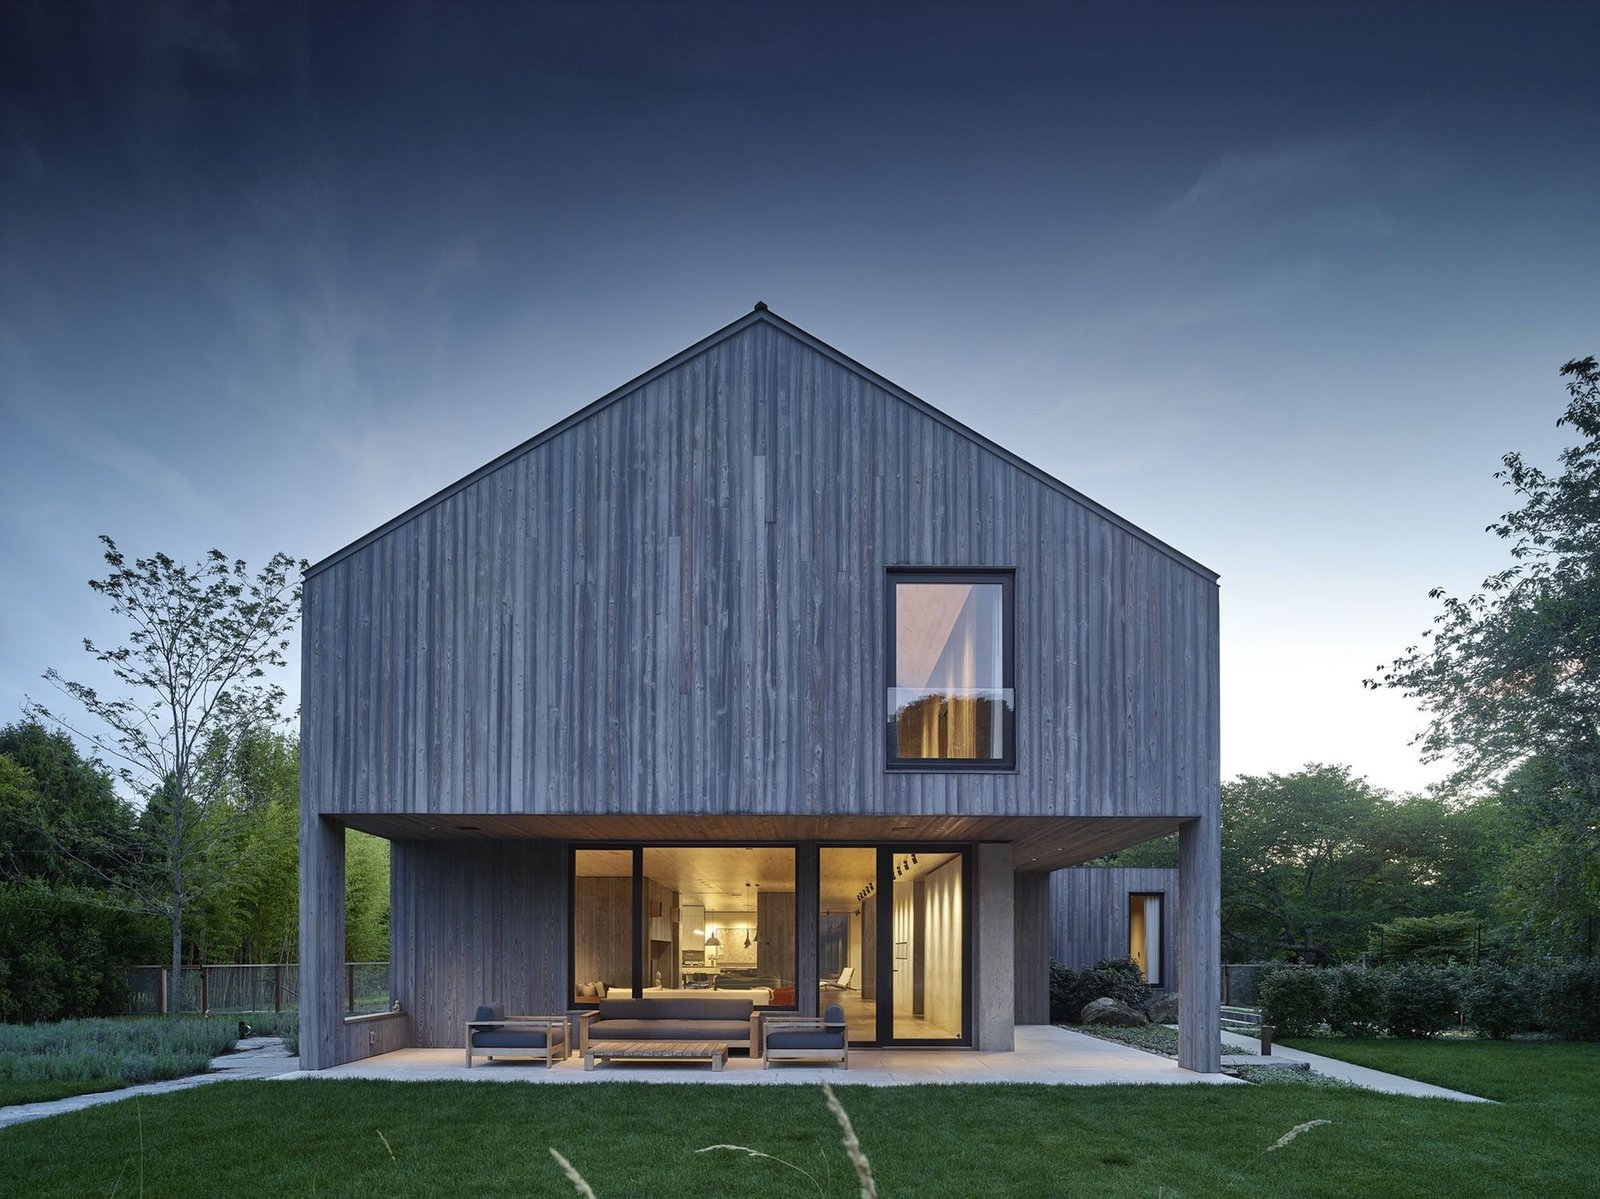 Exterior, Wood Siding Material, Concrete Siding Material, Gable RoofLine, and Metal Roof Material Charred cypress siding by ReSwan Timber Co.  Best Photos from My Choice